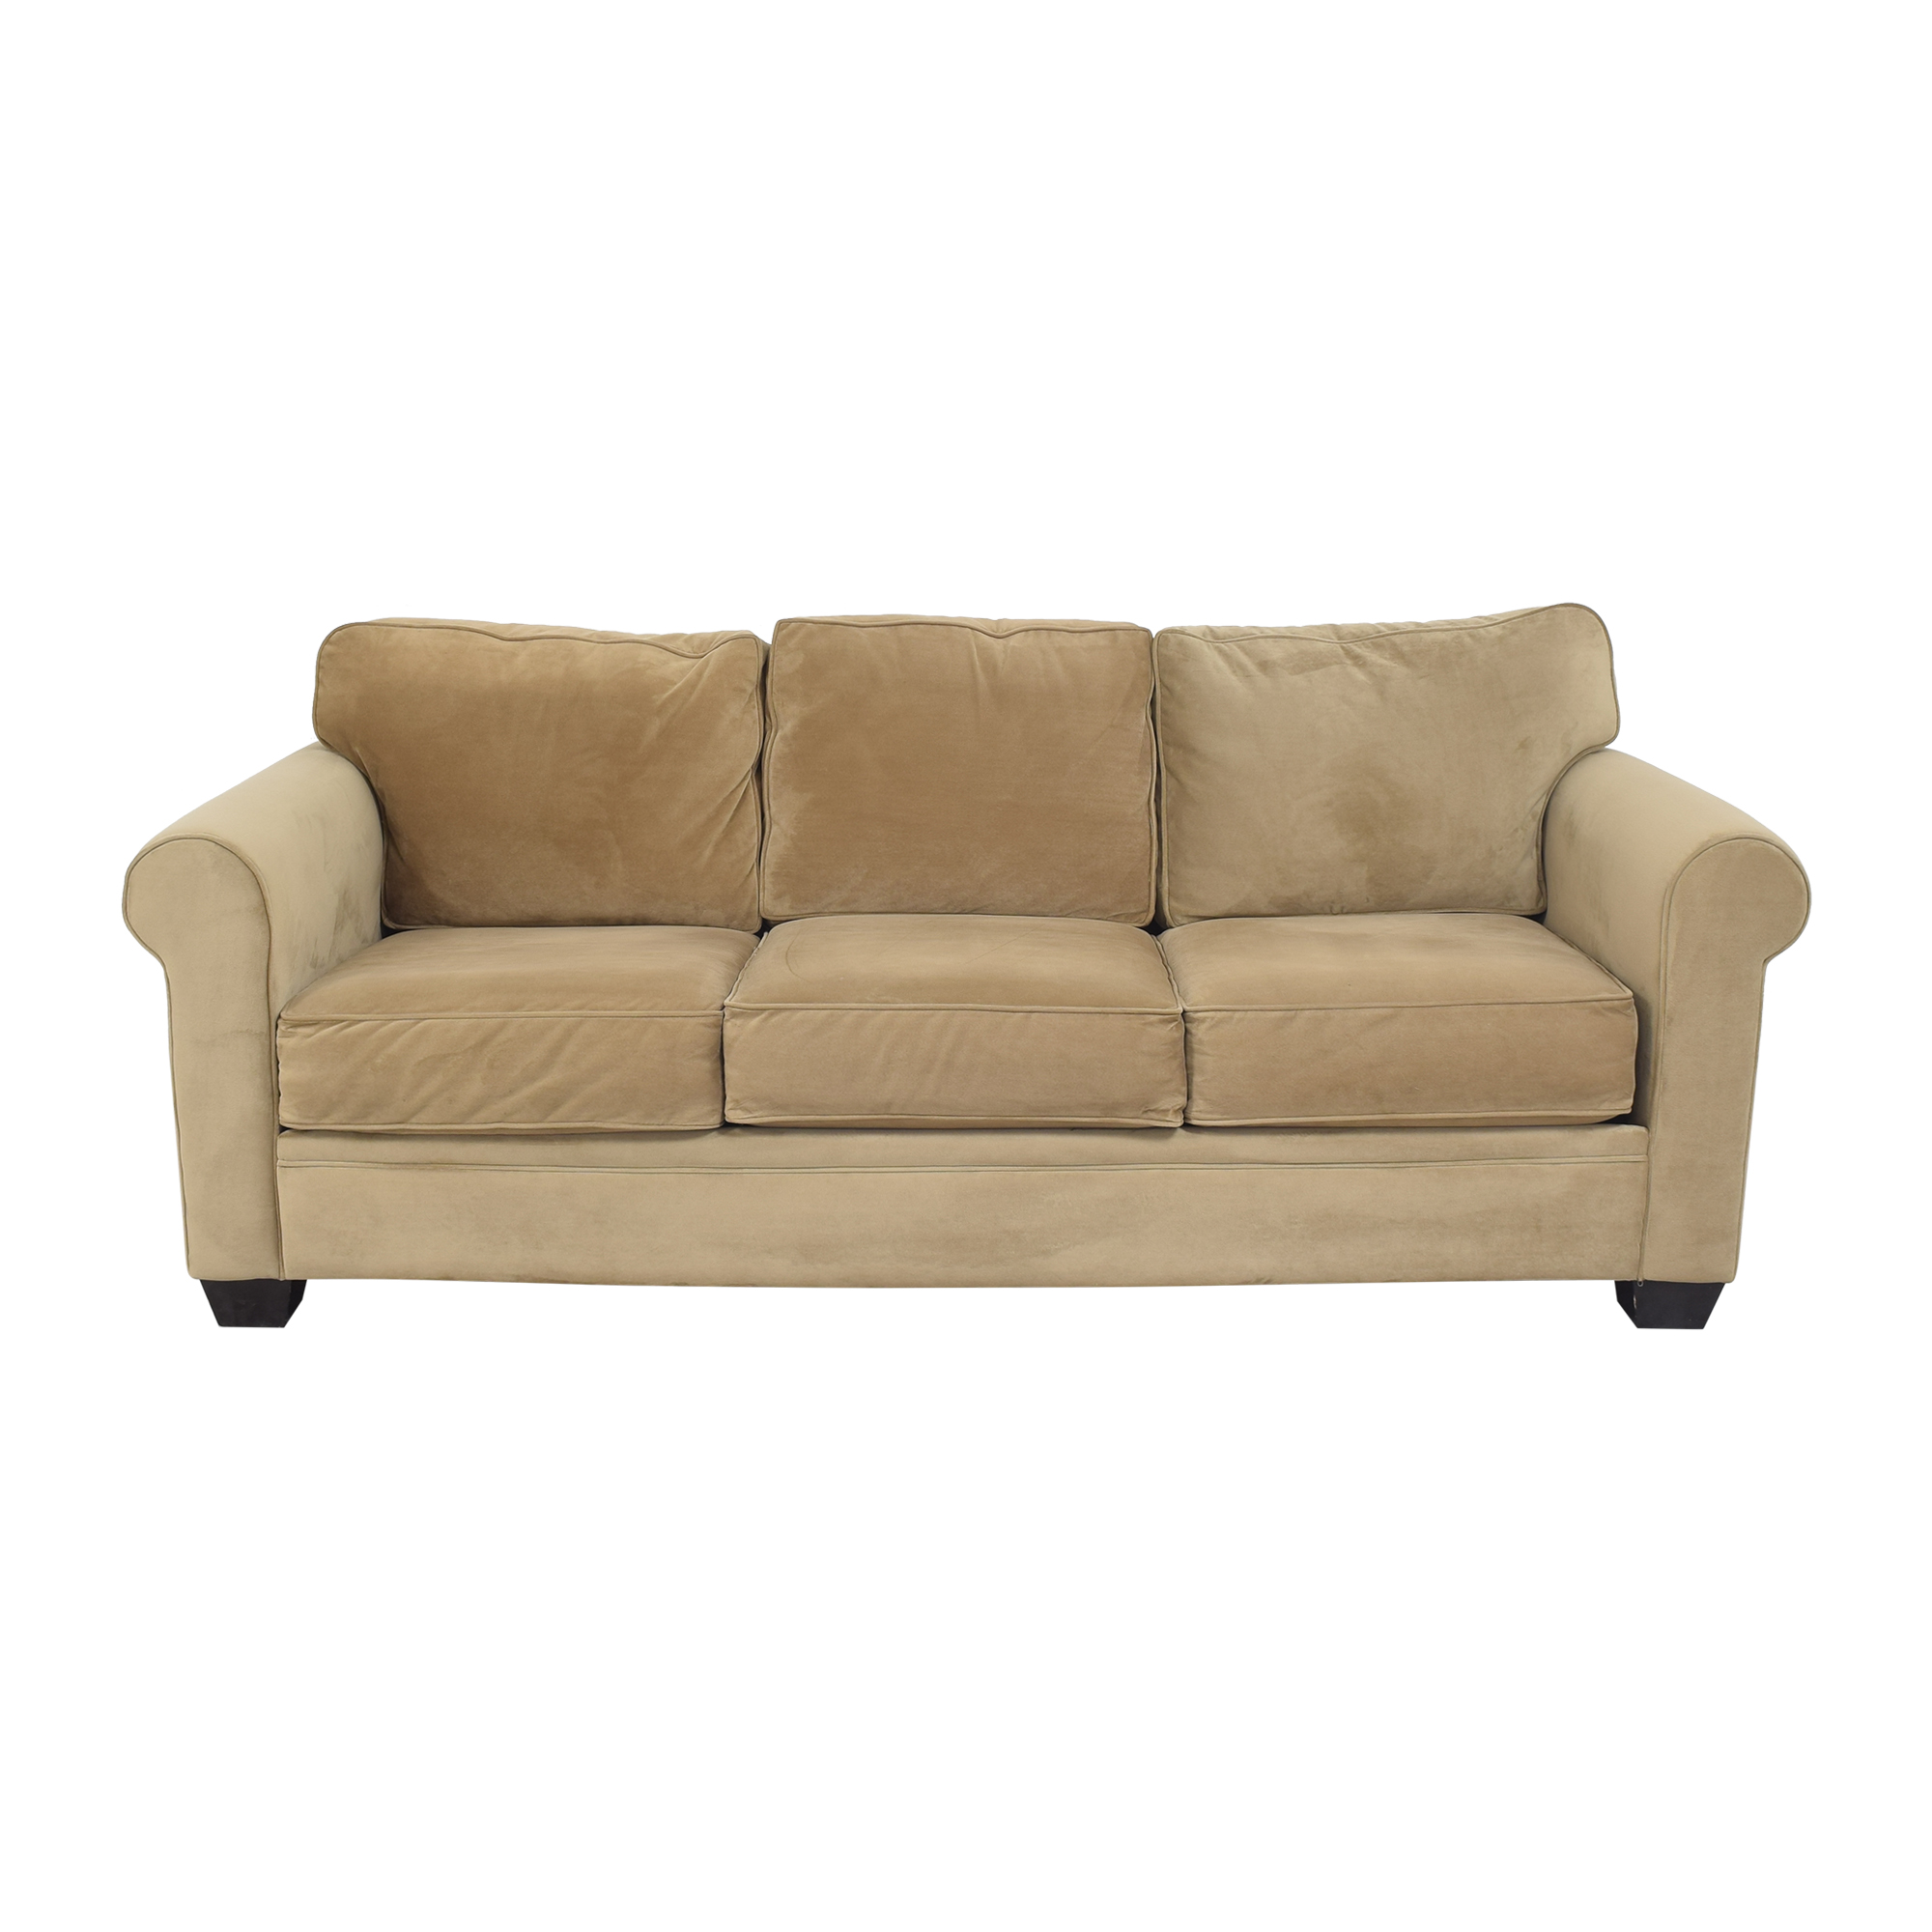 Macy's Roll Arm Sofa sale